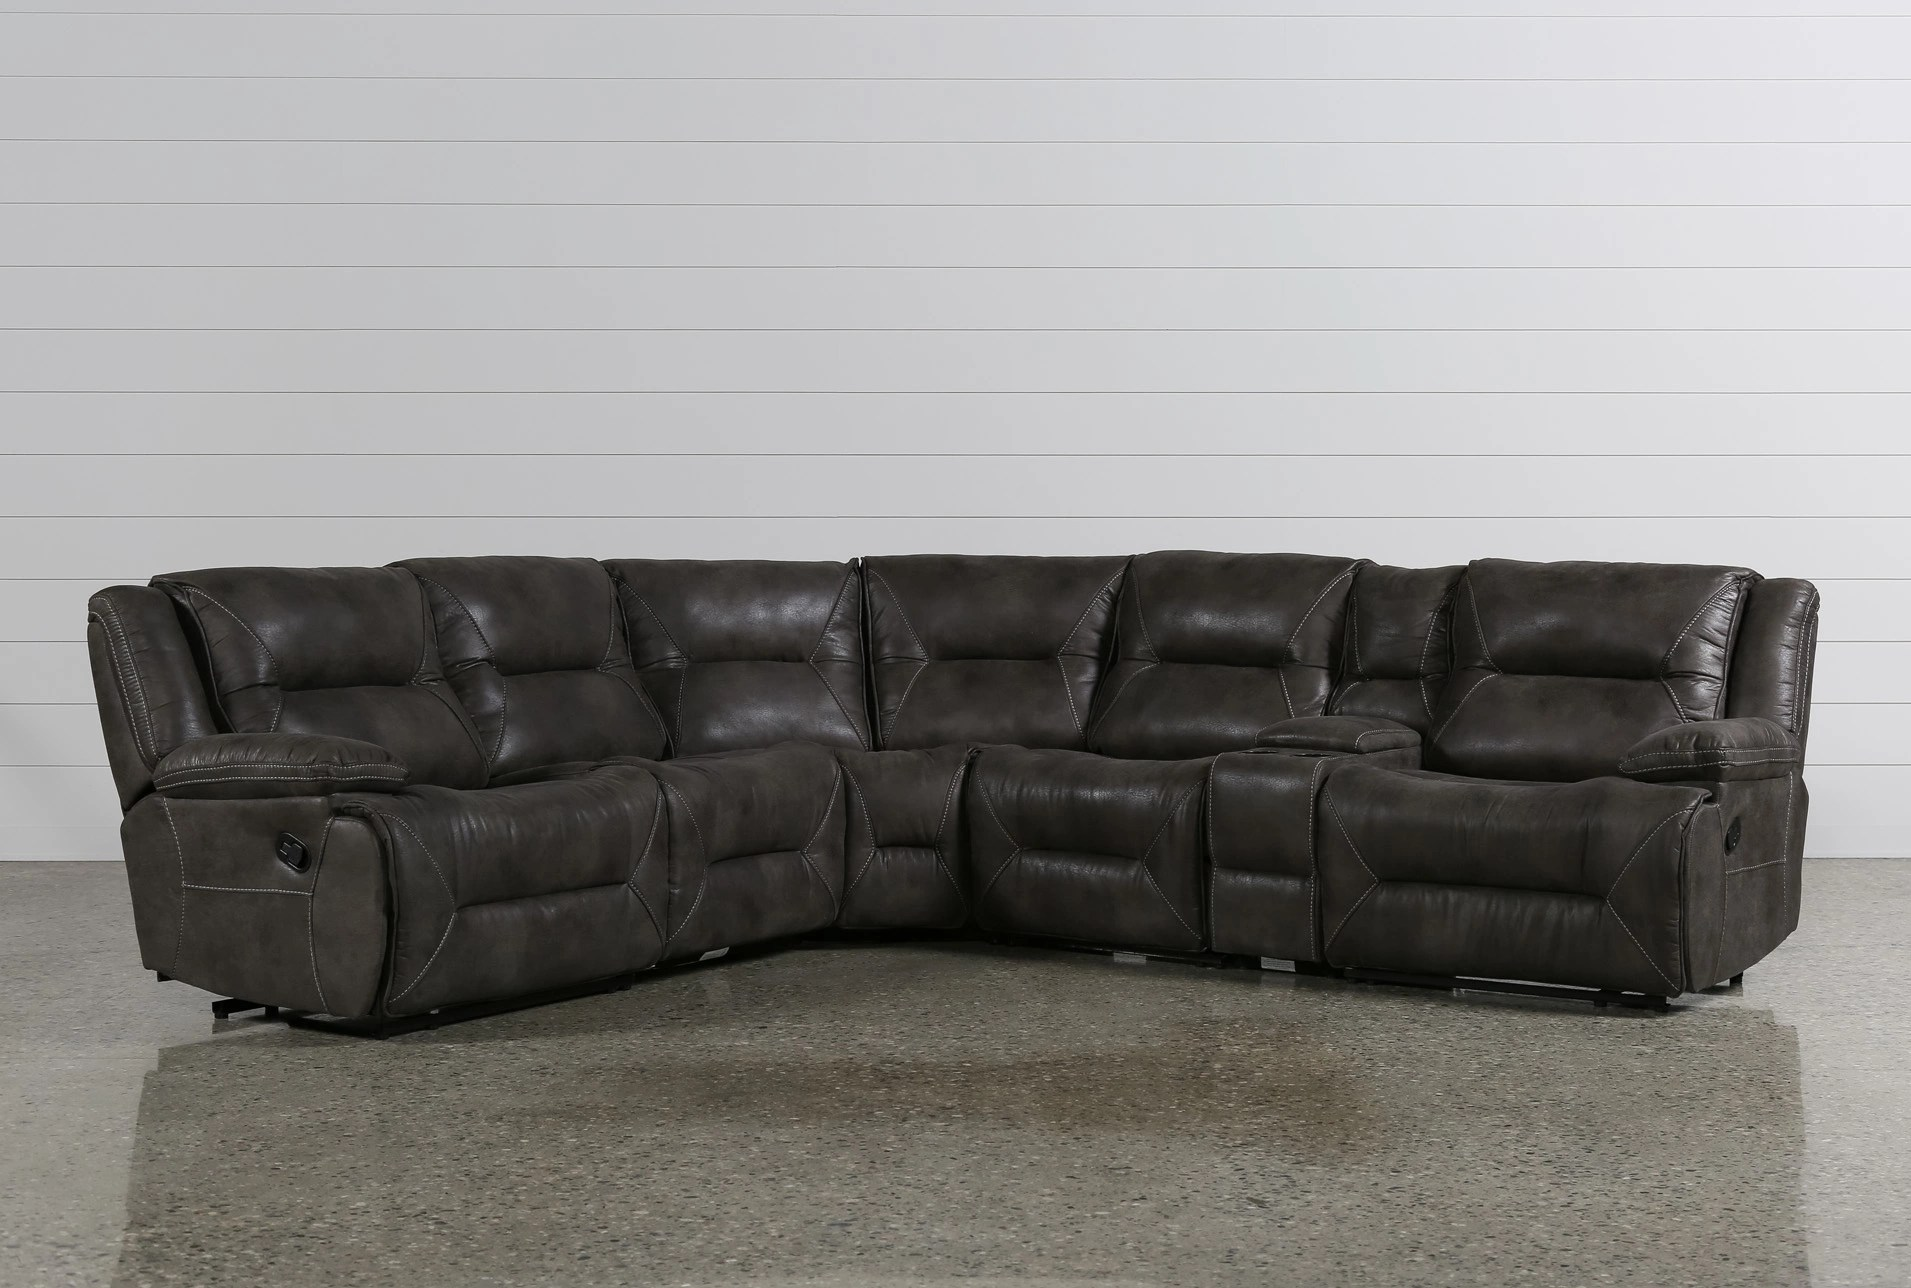 motorized sectional sofa gramercy side table with drawer power reclining vs manual baci living room